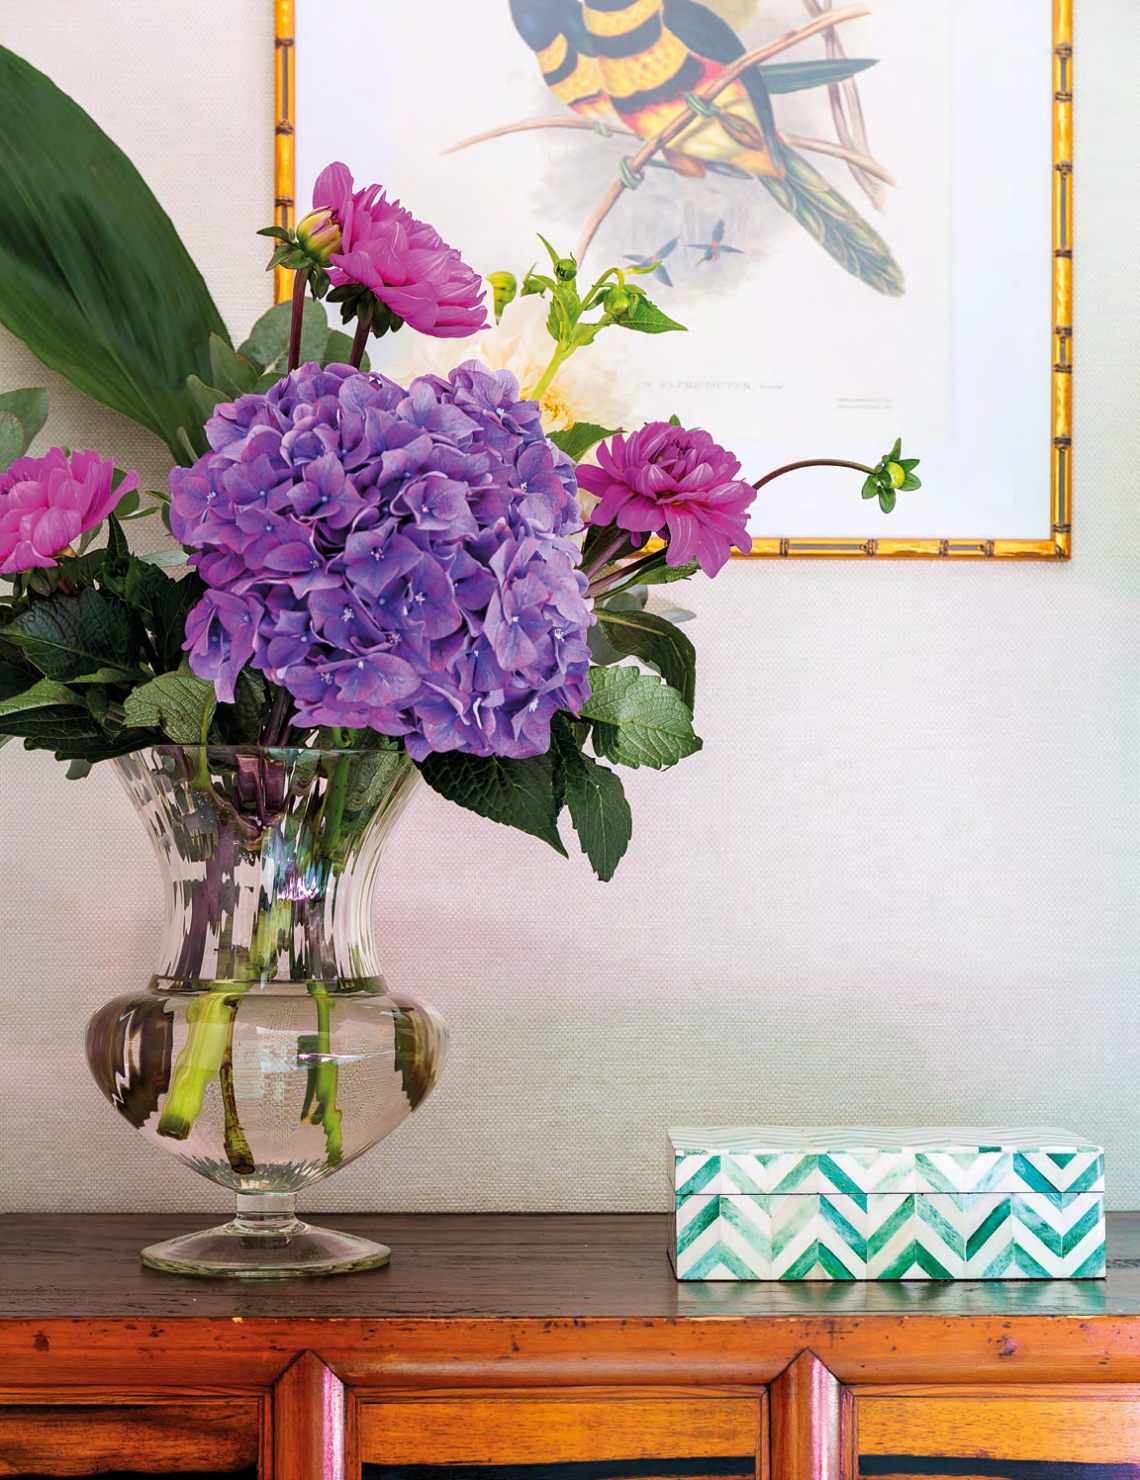 The vibrant colours of the floral arrangement accentuate the jewel tones of the master bedroom.